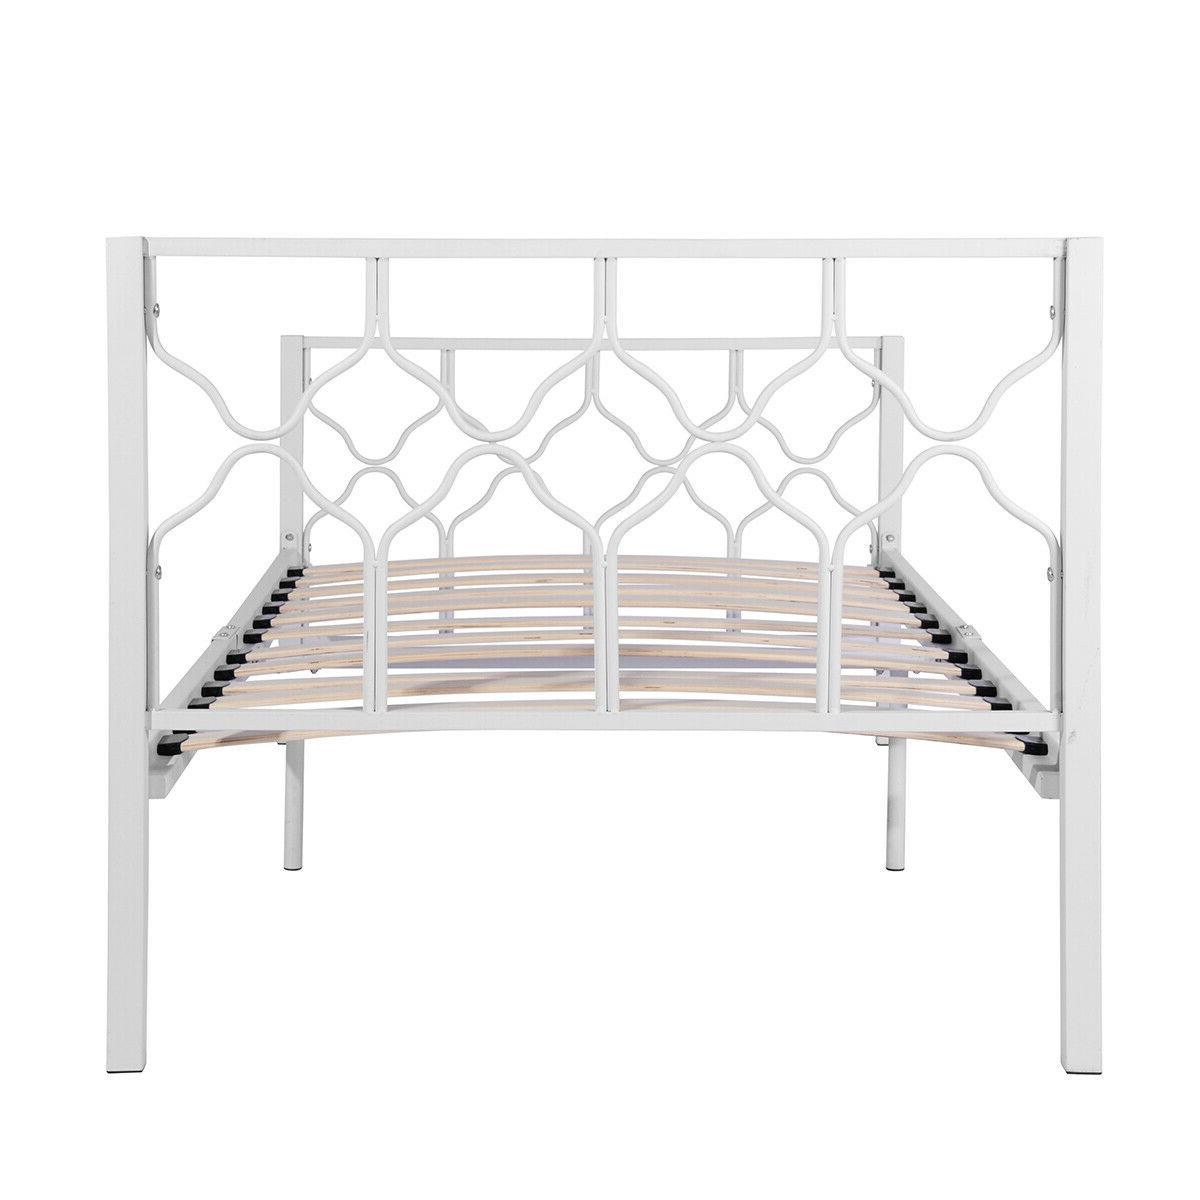 Twin Frame Metal Bed Structure